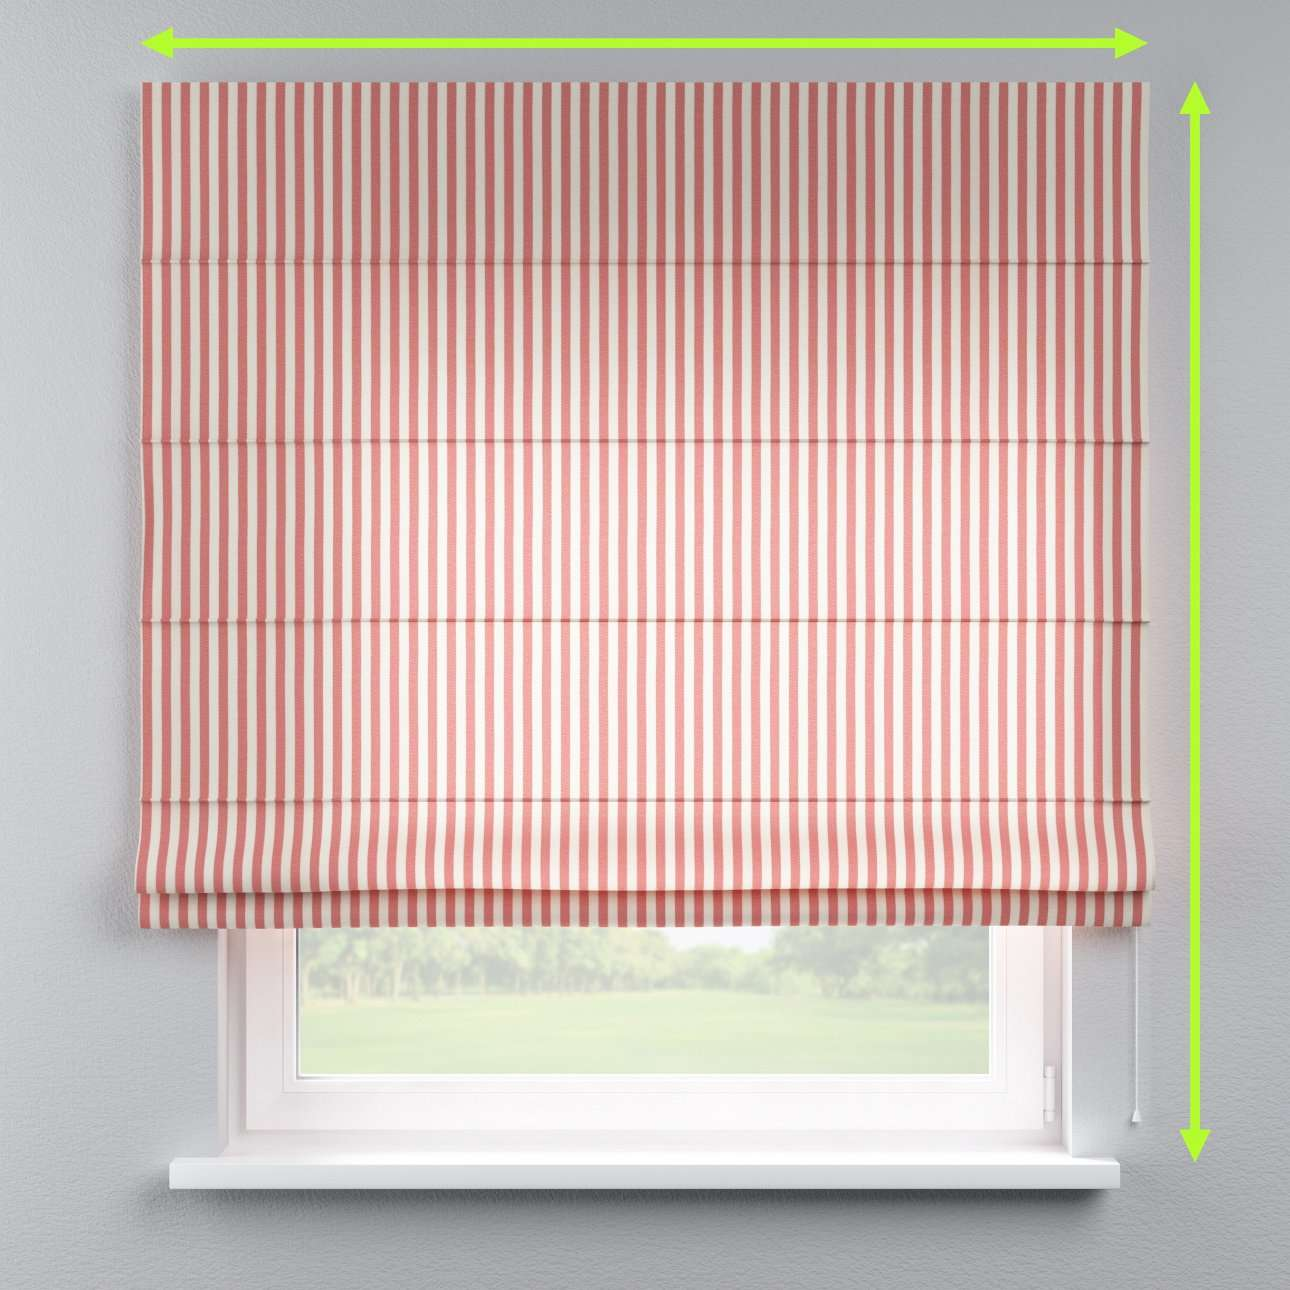 Capri roman blind in collection Quadro, fabric: 136-17